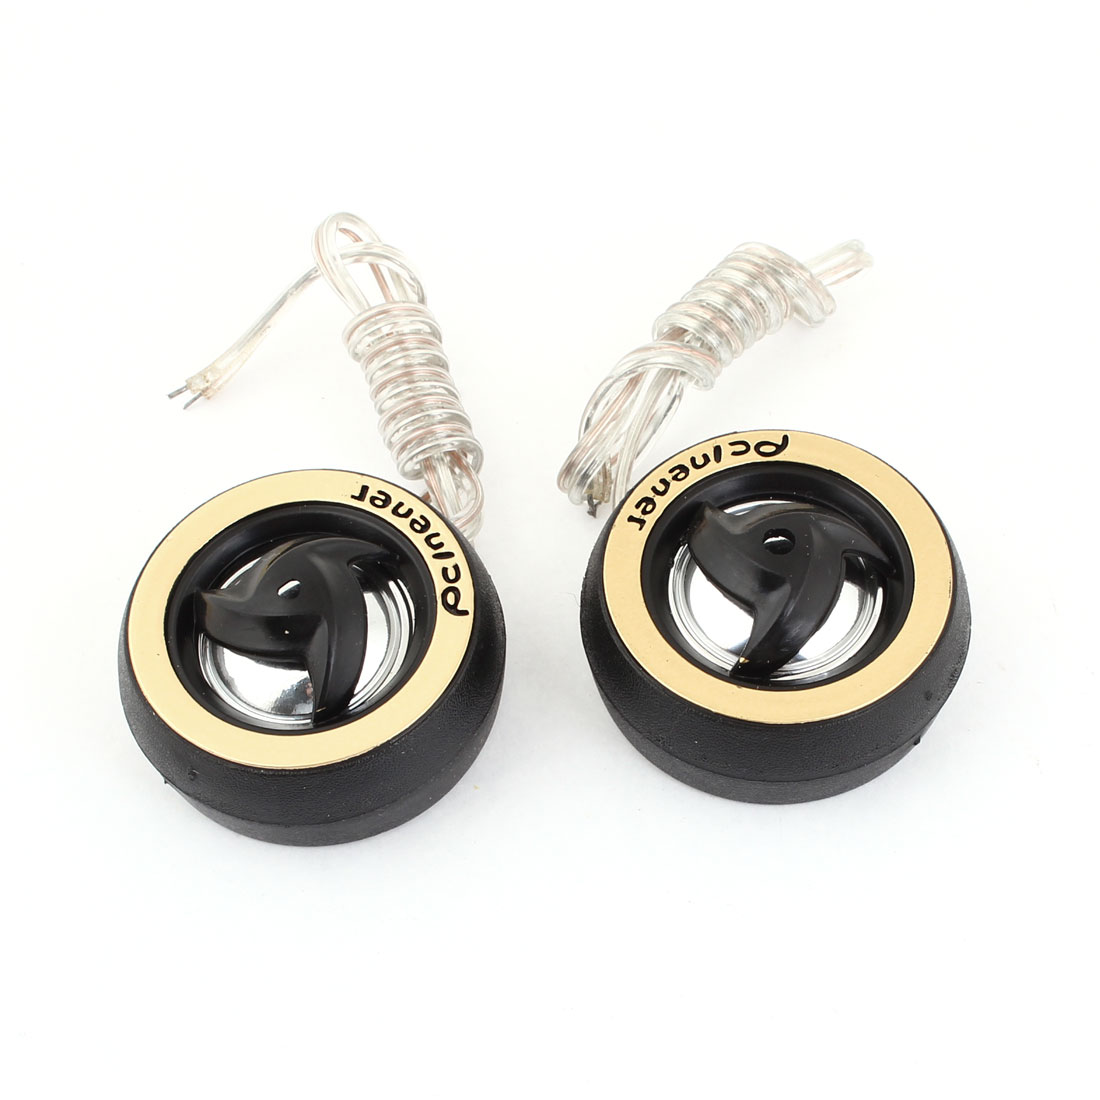 2 Pcs 45mm Dia Black Plastic Audio Dome Tweeter 150W for Car